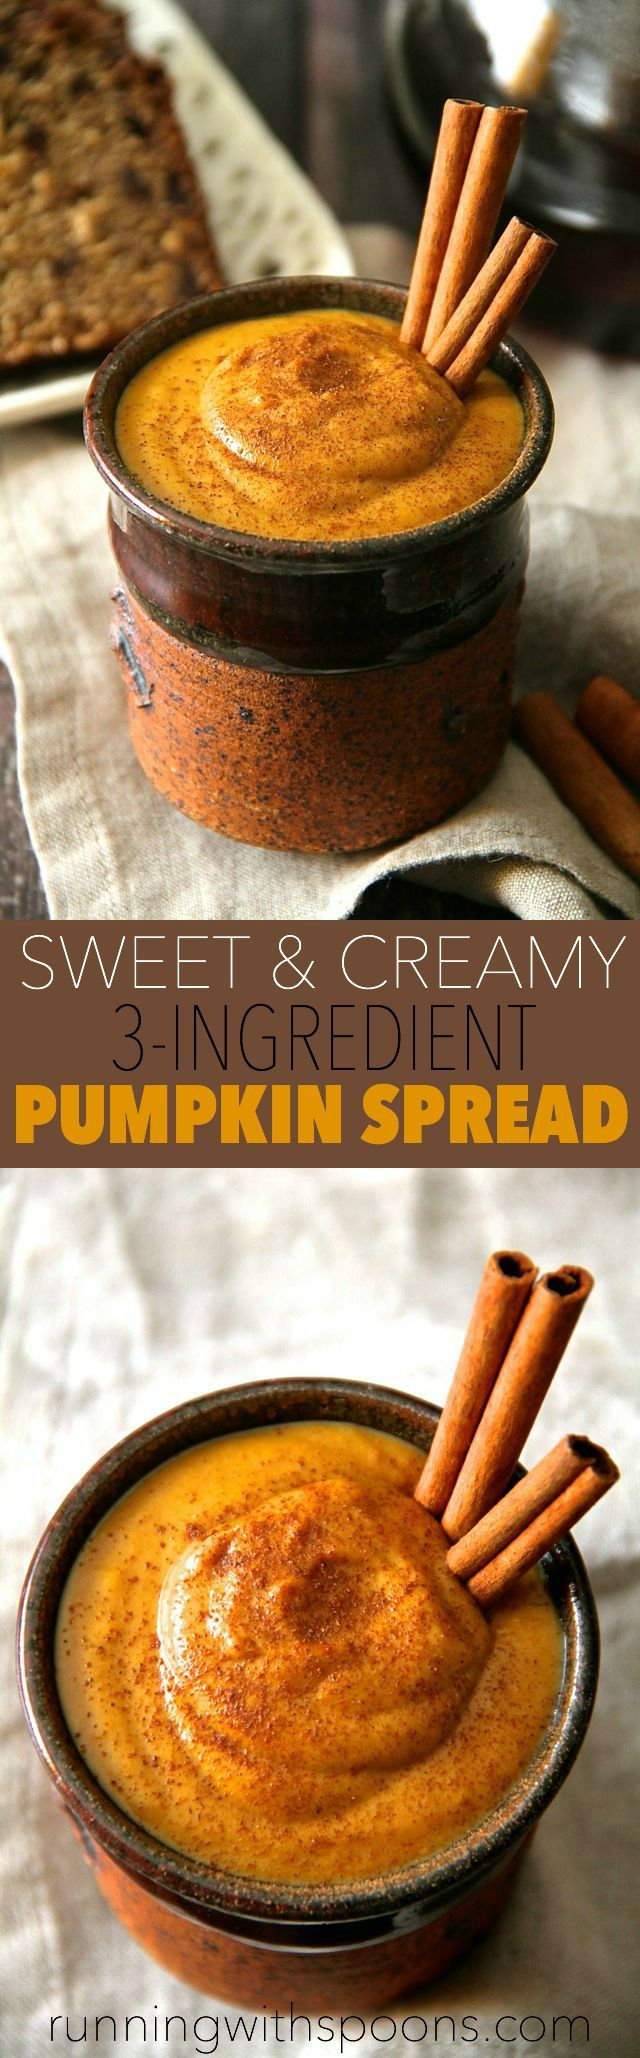 Sweet and Creamy Pumpkin Spread -- made with 3 ingredients and in under 2 minutes, this pumpkin spread is the perfect way to add a touch of fall flavour to your favourite meals and snacks! Vegan, gluten-free, and Paleo friendly    runningwithspoons.com #pumpkin #fall #vegan